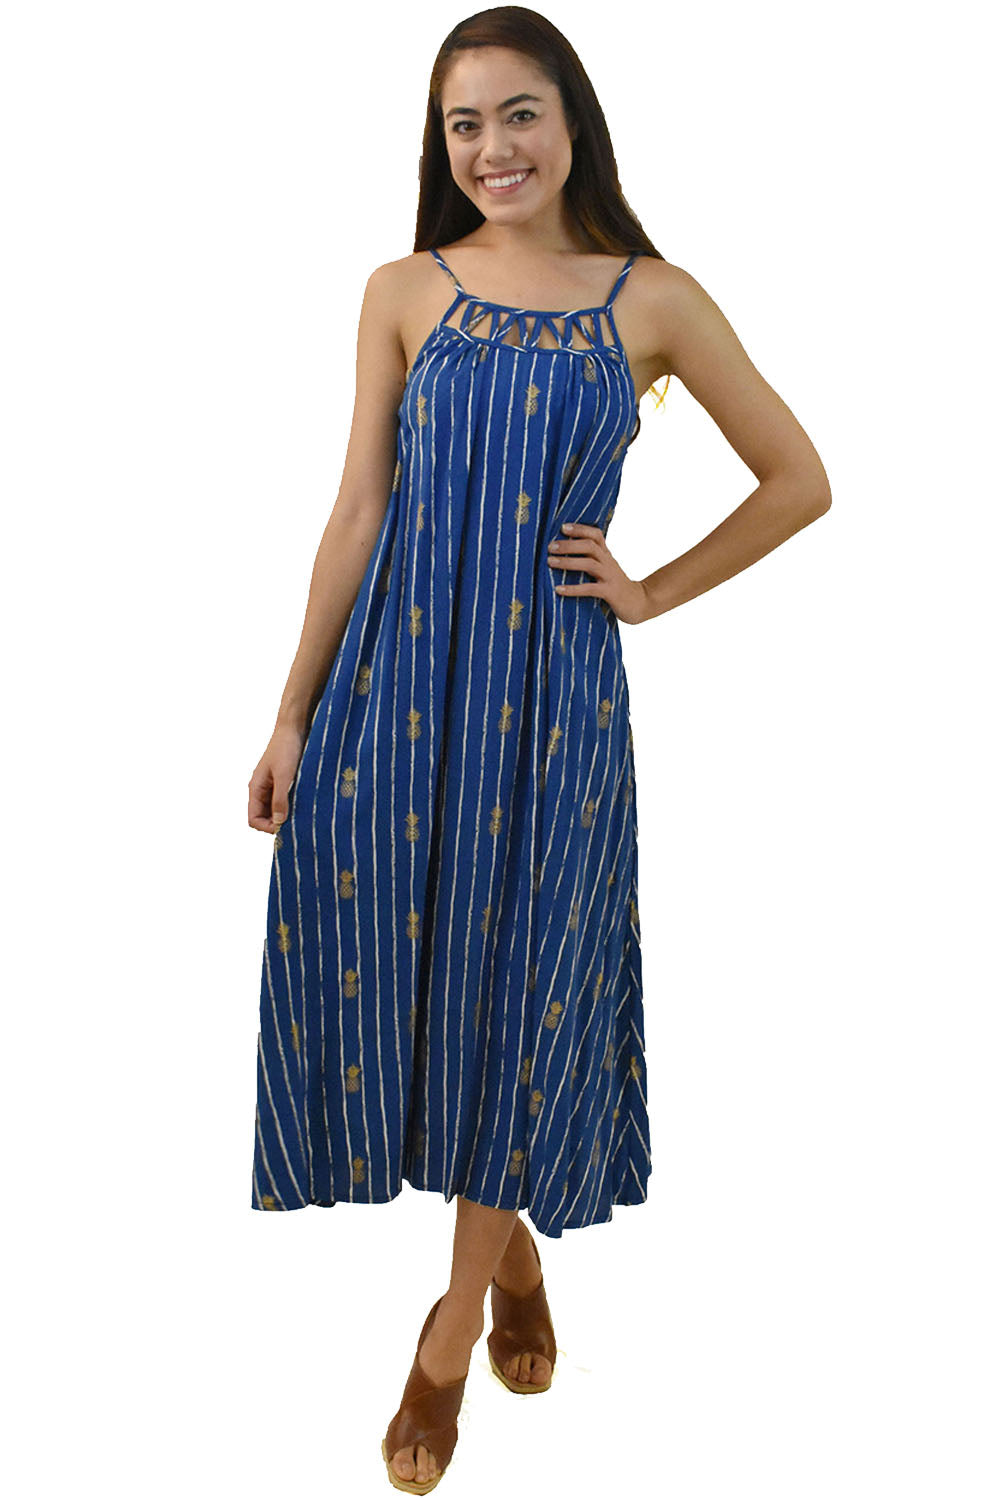 Leilani Dress in Pineapple Print Navy